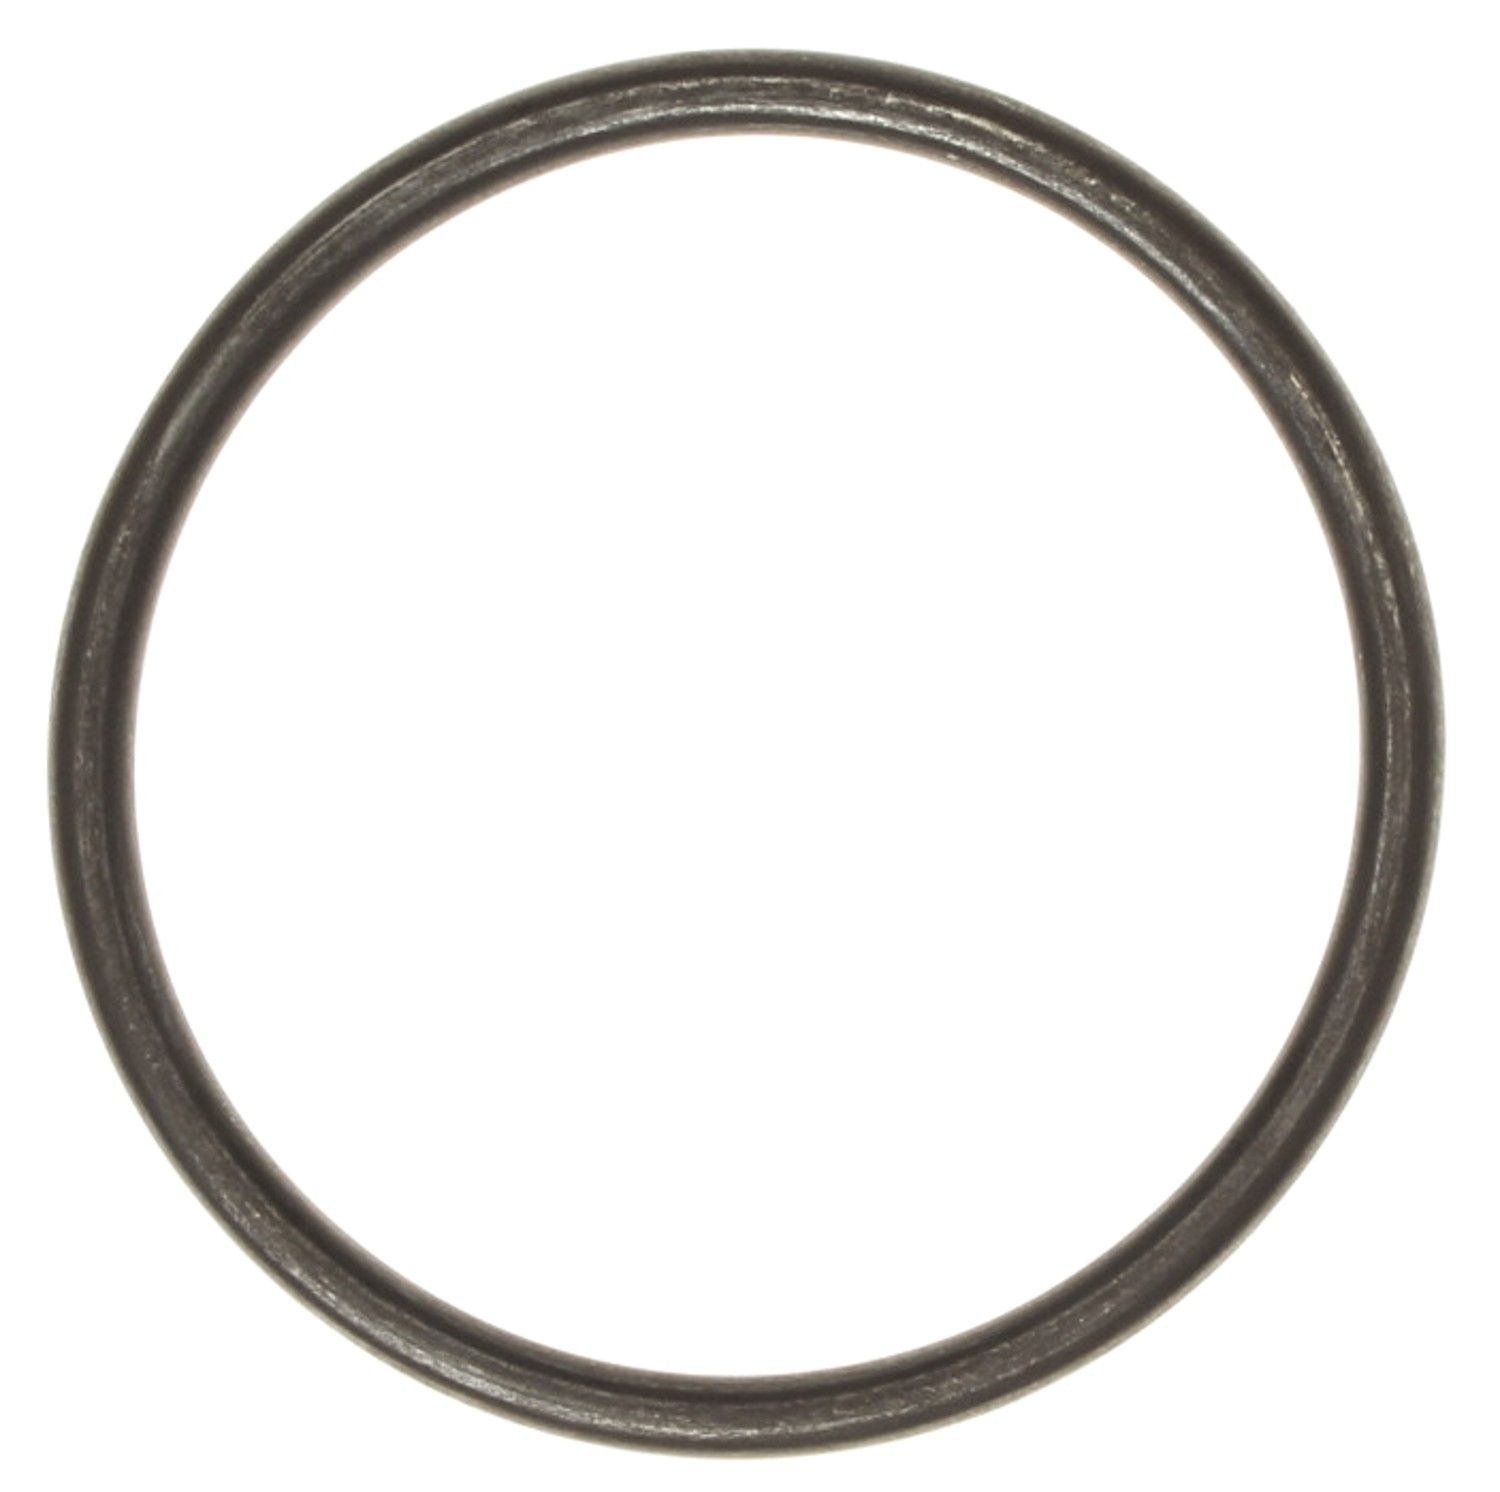 2002 Acura RSX Catalytic Converter Gasket - Rear 4 Cyl 2.0L (Victor Gaskets  F12387) Ring Type A Steel .